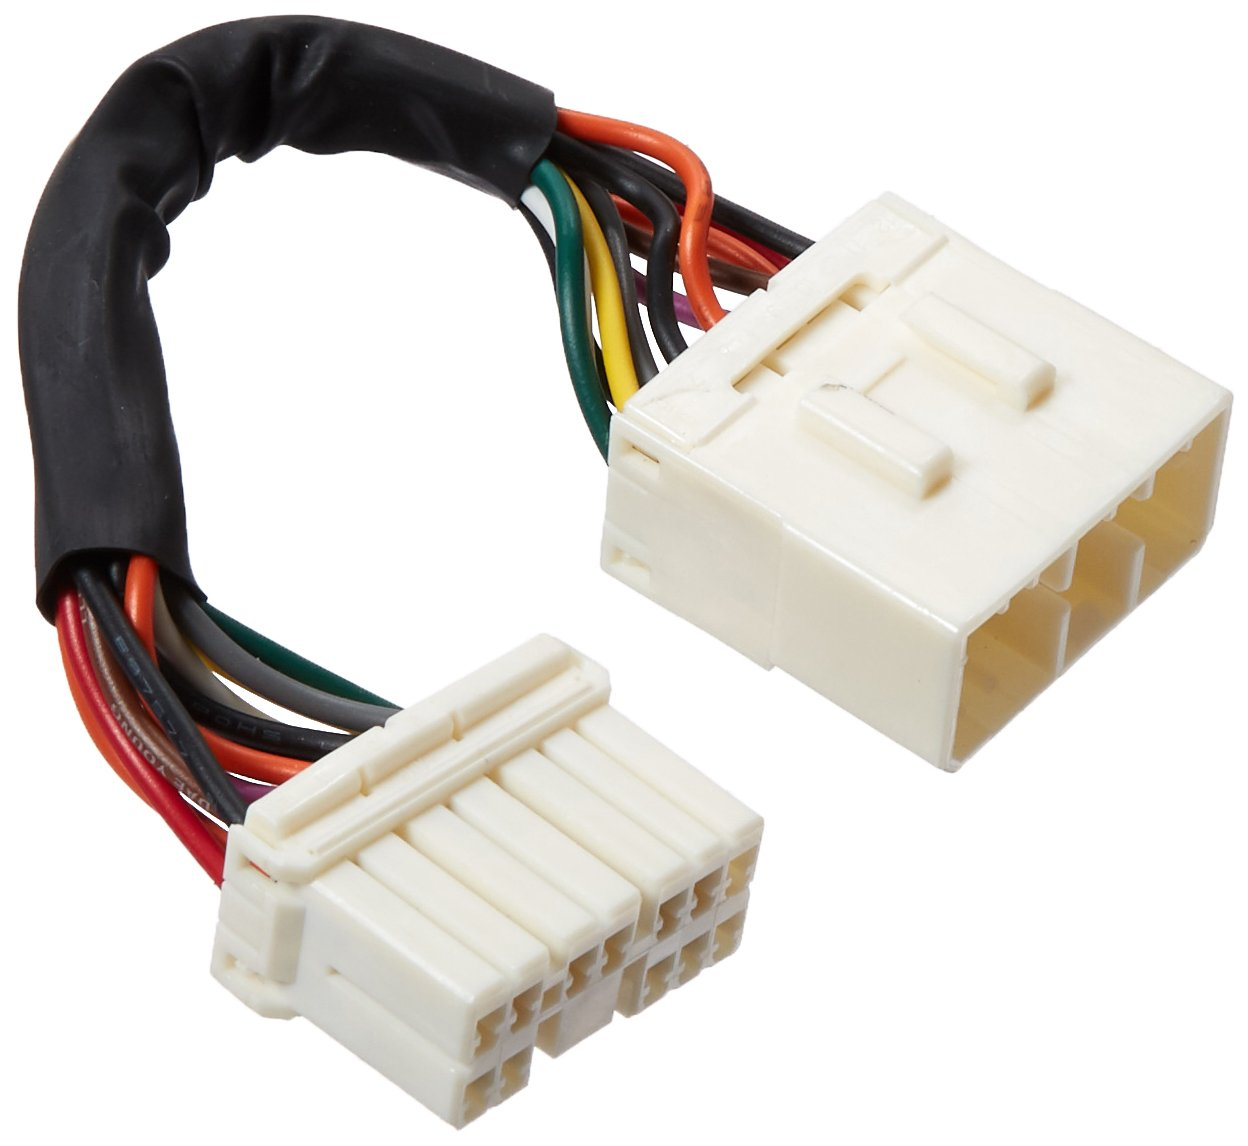 61o9TctSTfL._SL1248_ amazon com kuryakyn 5496 total control passing lamp harness Wiring Kits for Lights at gsmx.co